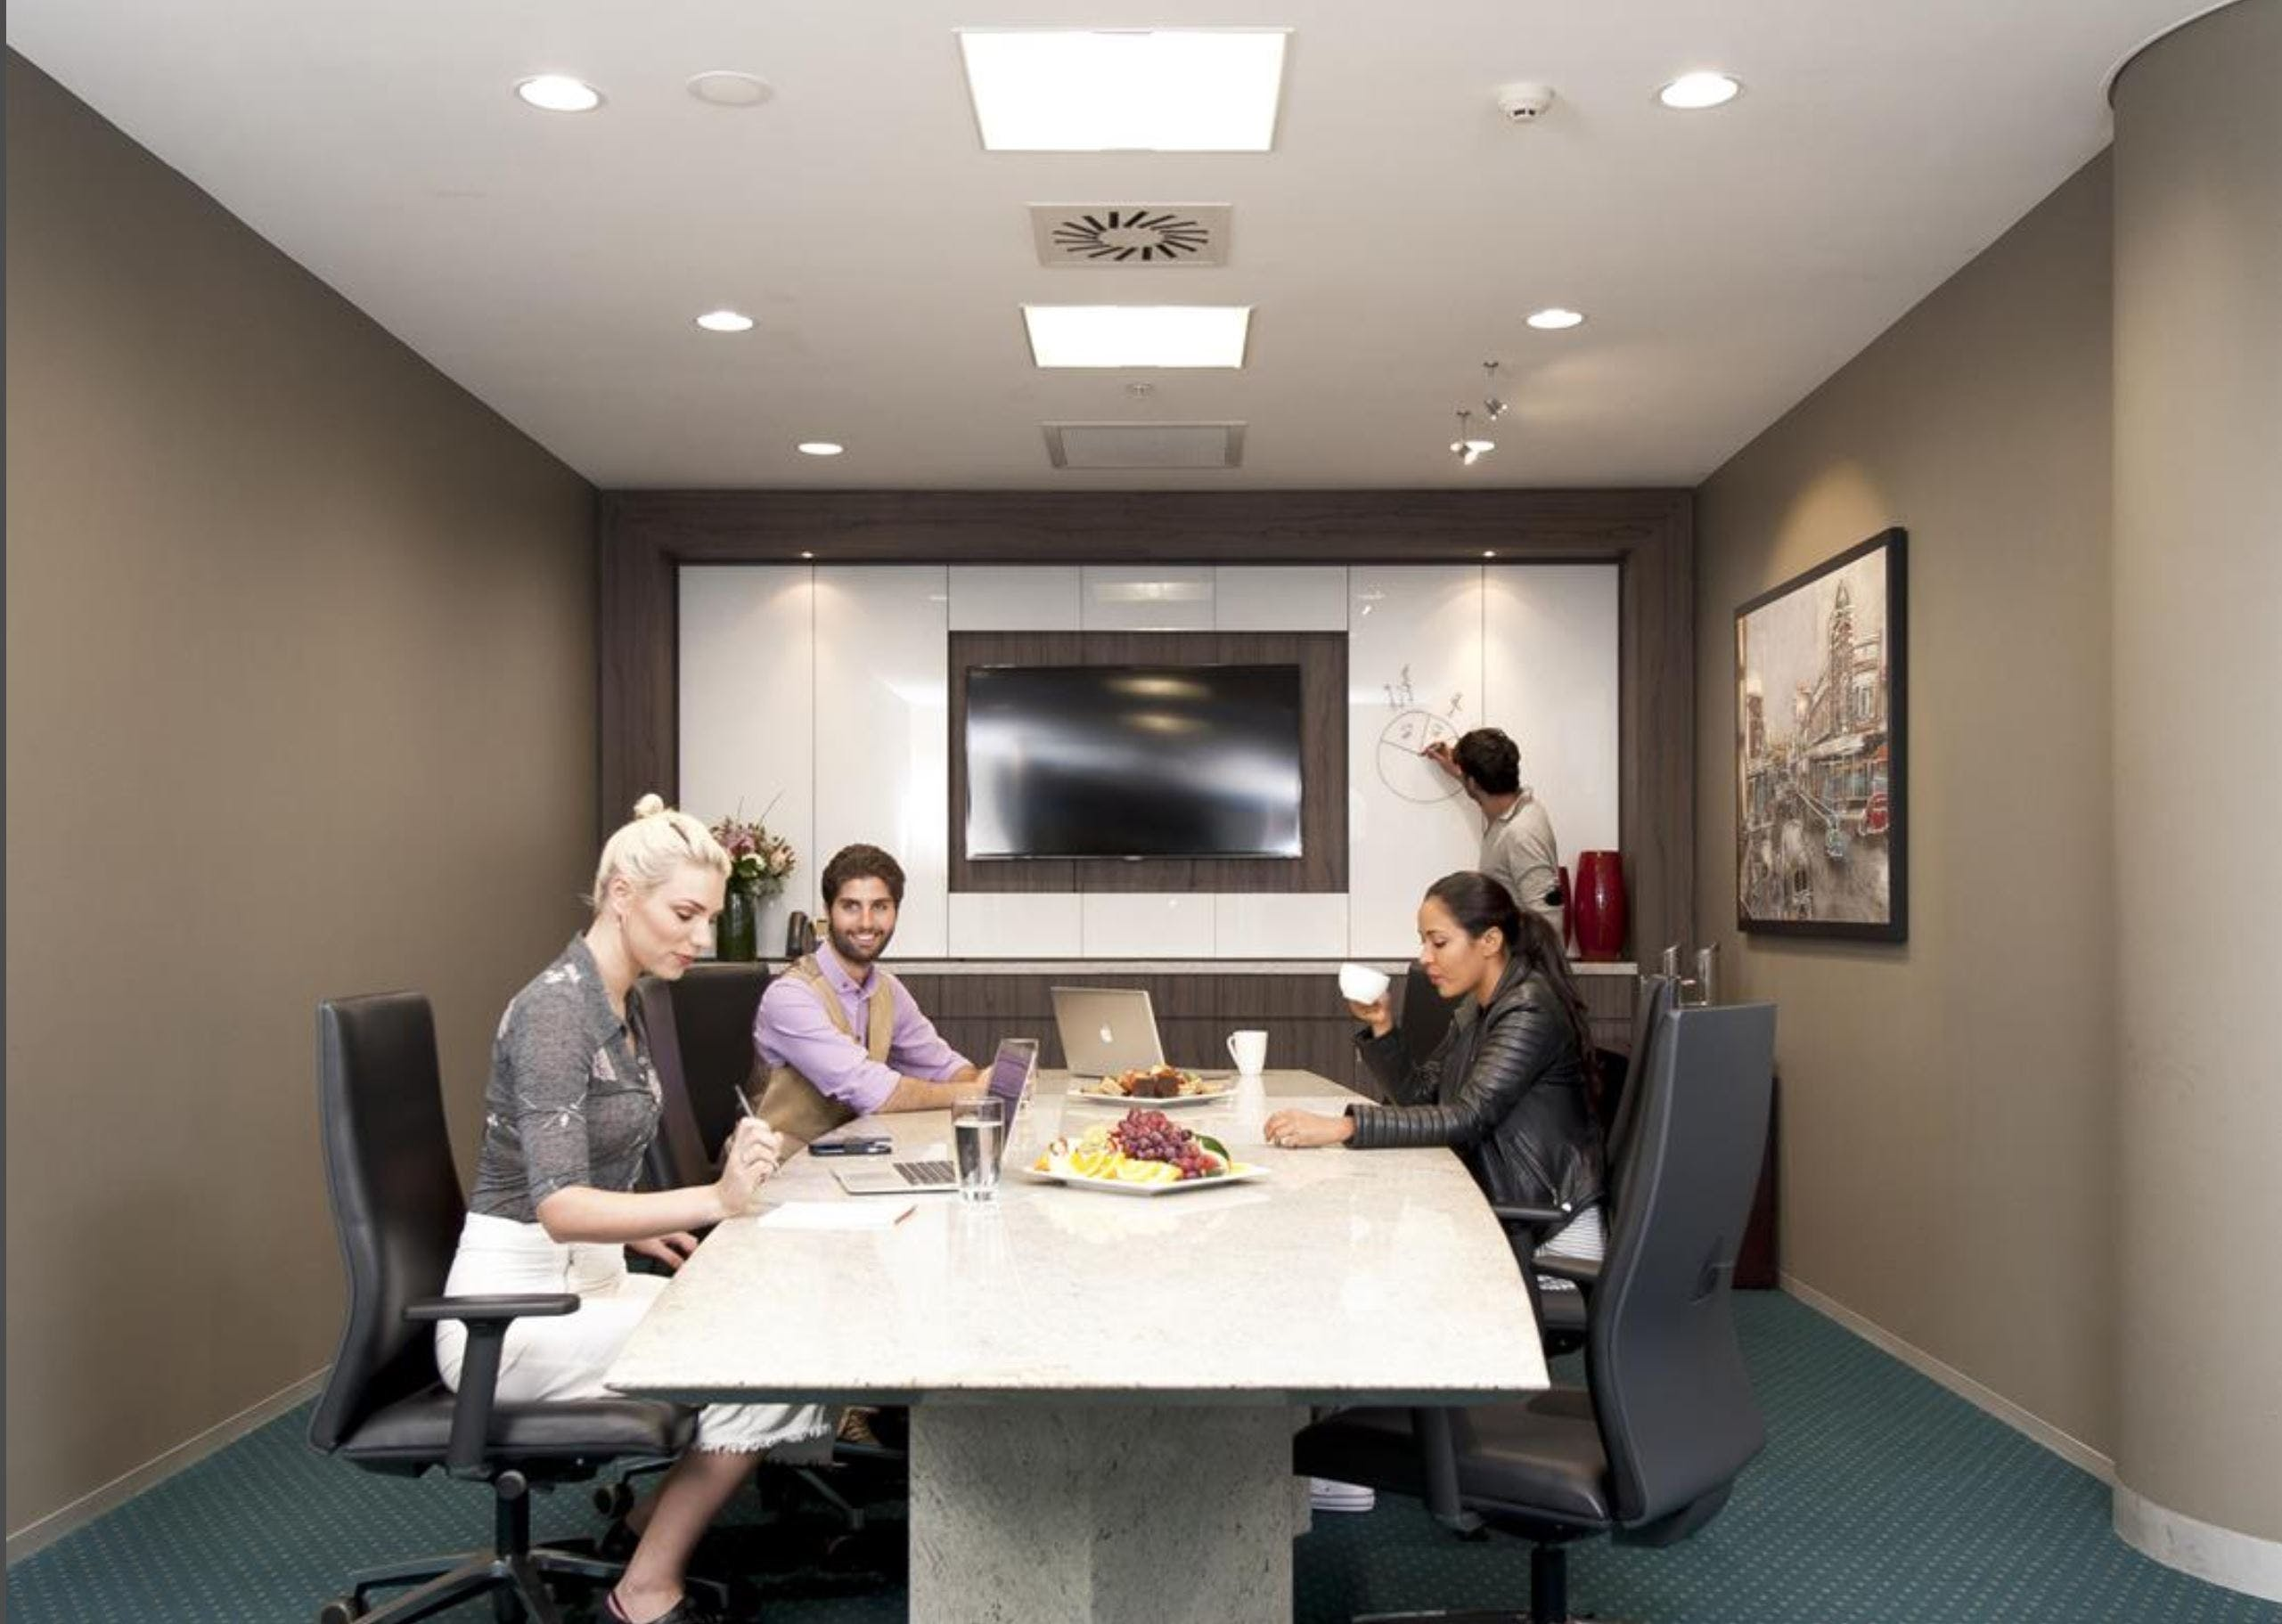 Premium Boardroom, meeting room at Avaya House, image 1